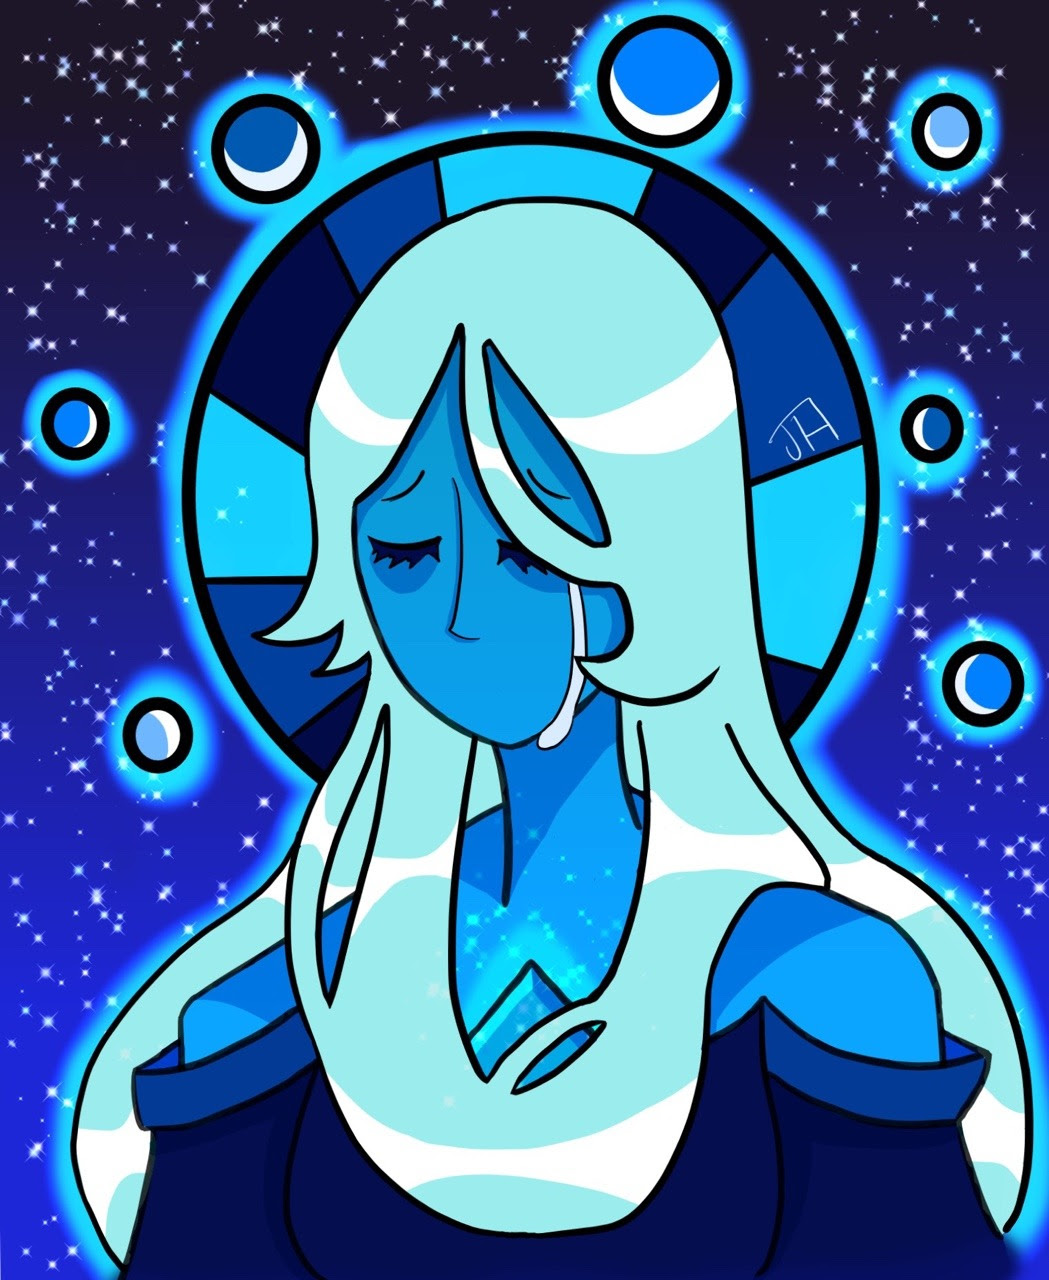 IT'S DONE! BLUE DIAMOND IS SO FUN TO DRAW It took me about 7 hours (wow!) and it's the longest I've ever drawn and it turned out GREAT!!! MediBang kept freezing and I wanted to do a crystal/mirror bg...